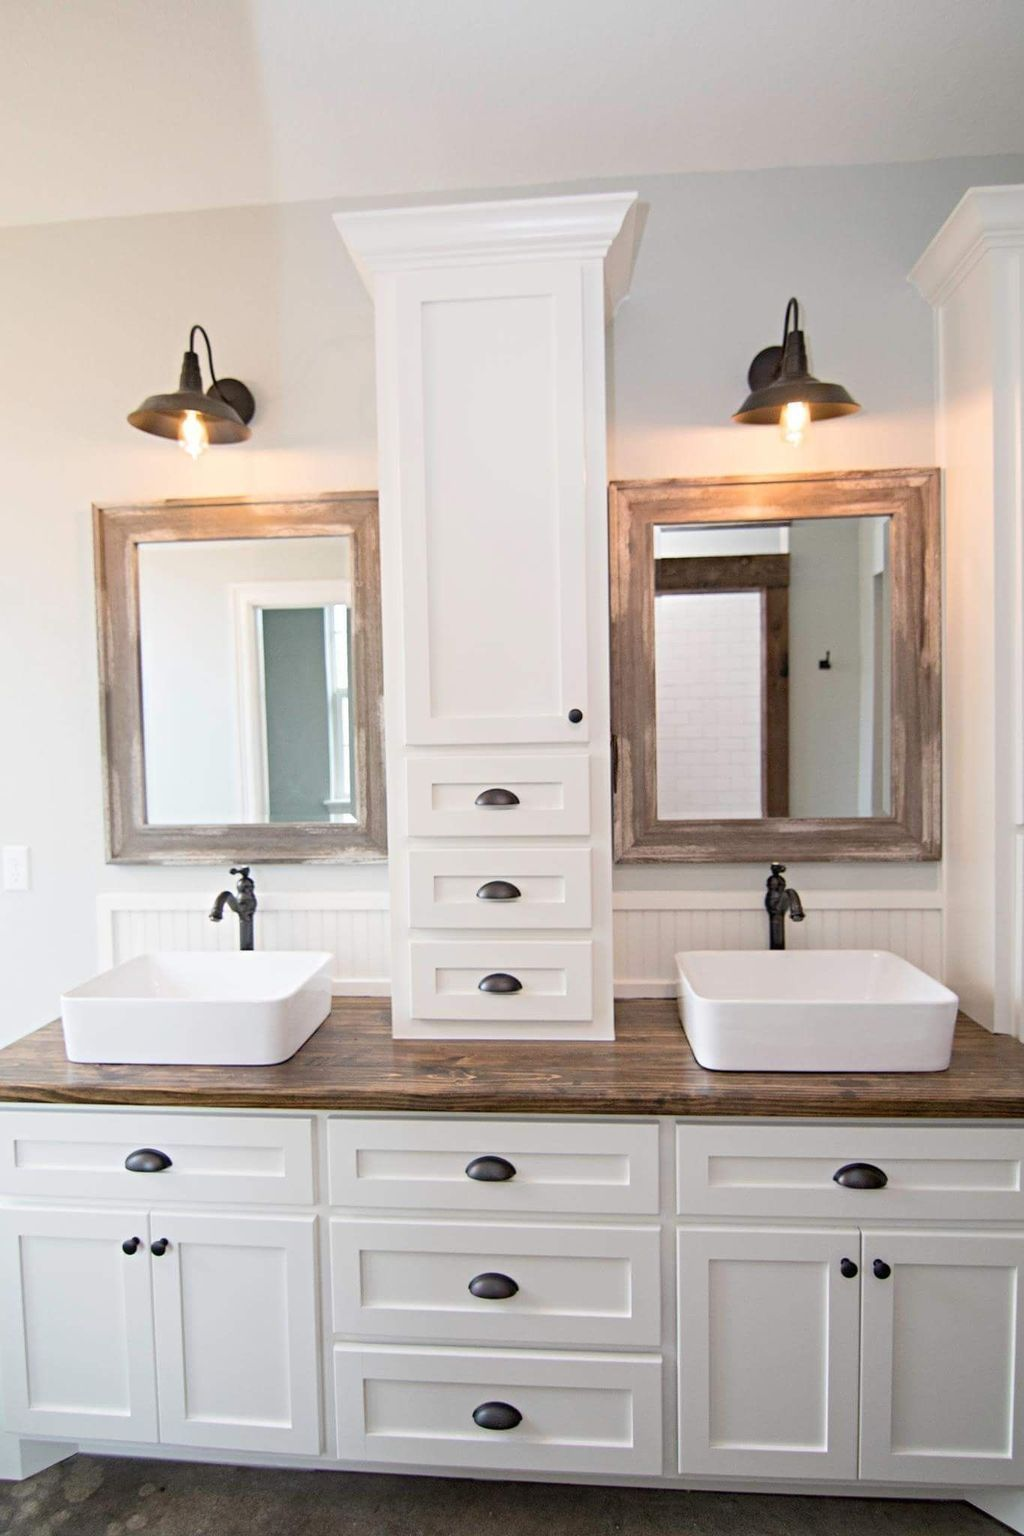 √ 10 most beautiful master bathroom ideas that are worth